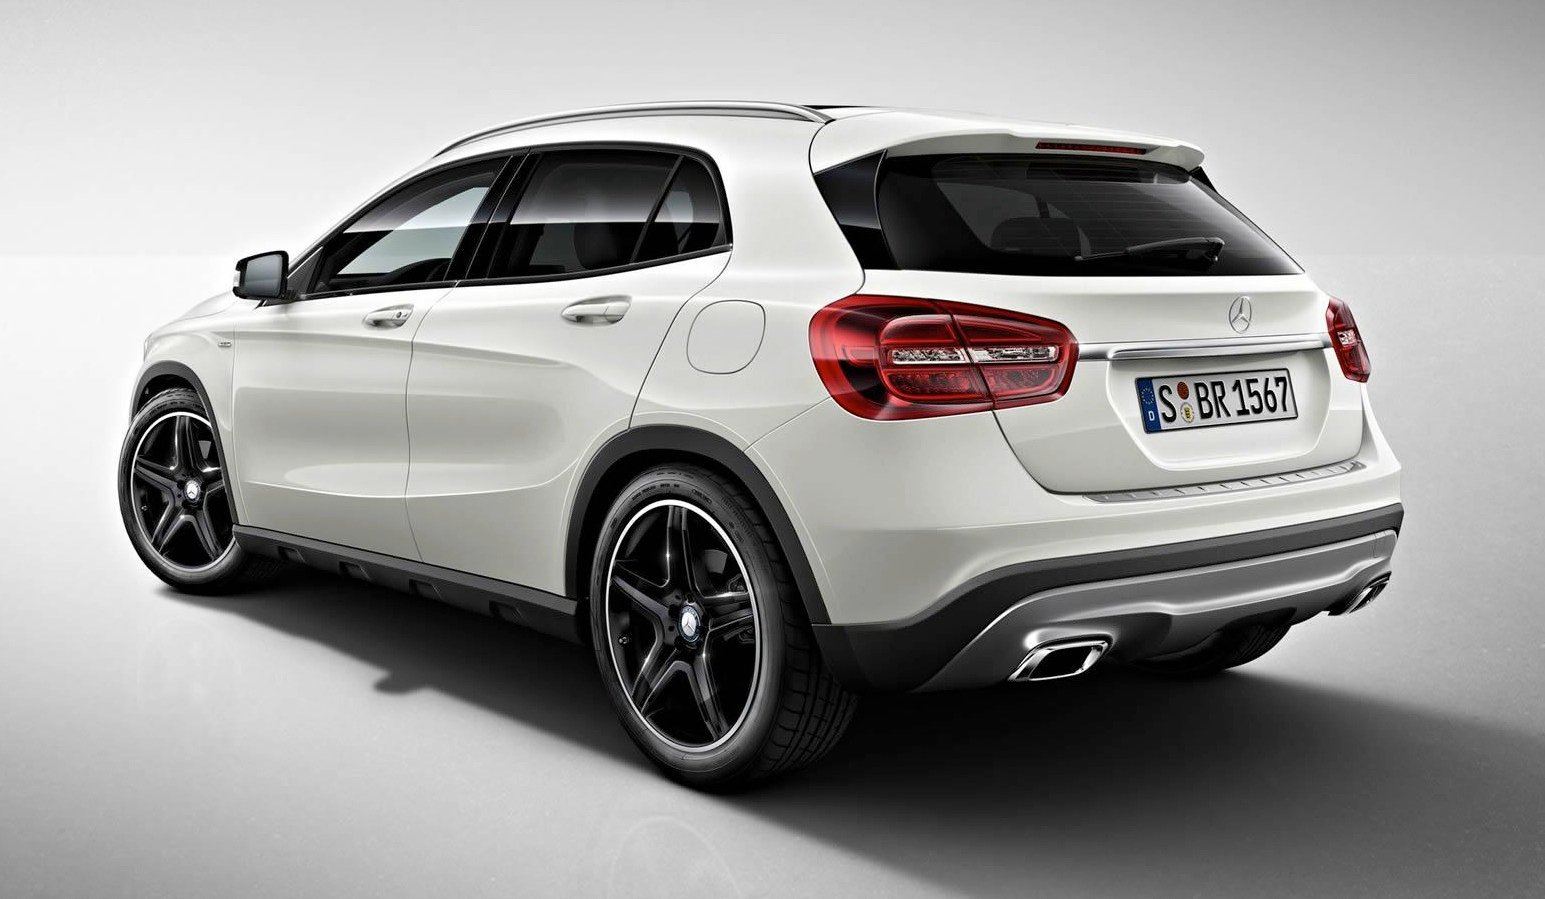 mercedes benz gla edition 1 limited edition compact suv. Black Bedroom Furniture Sets. Home Design Ideas